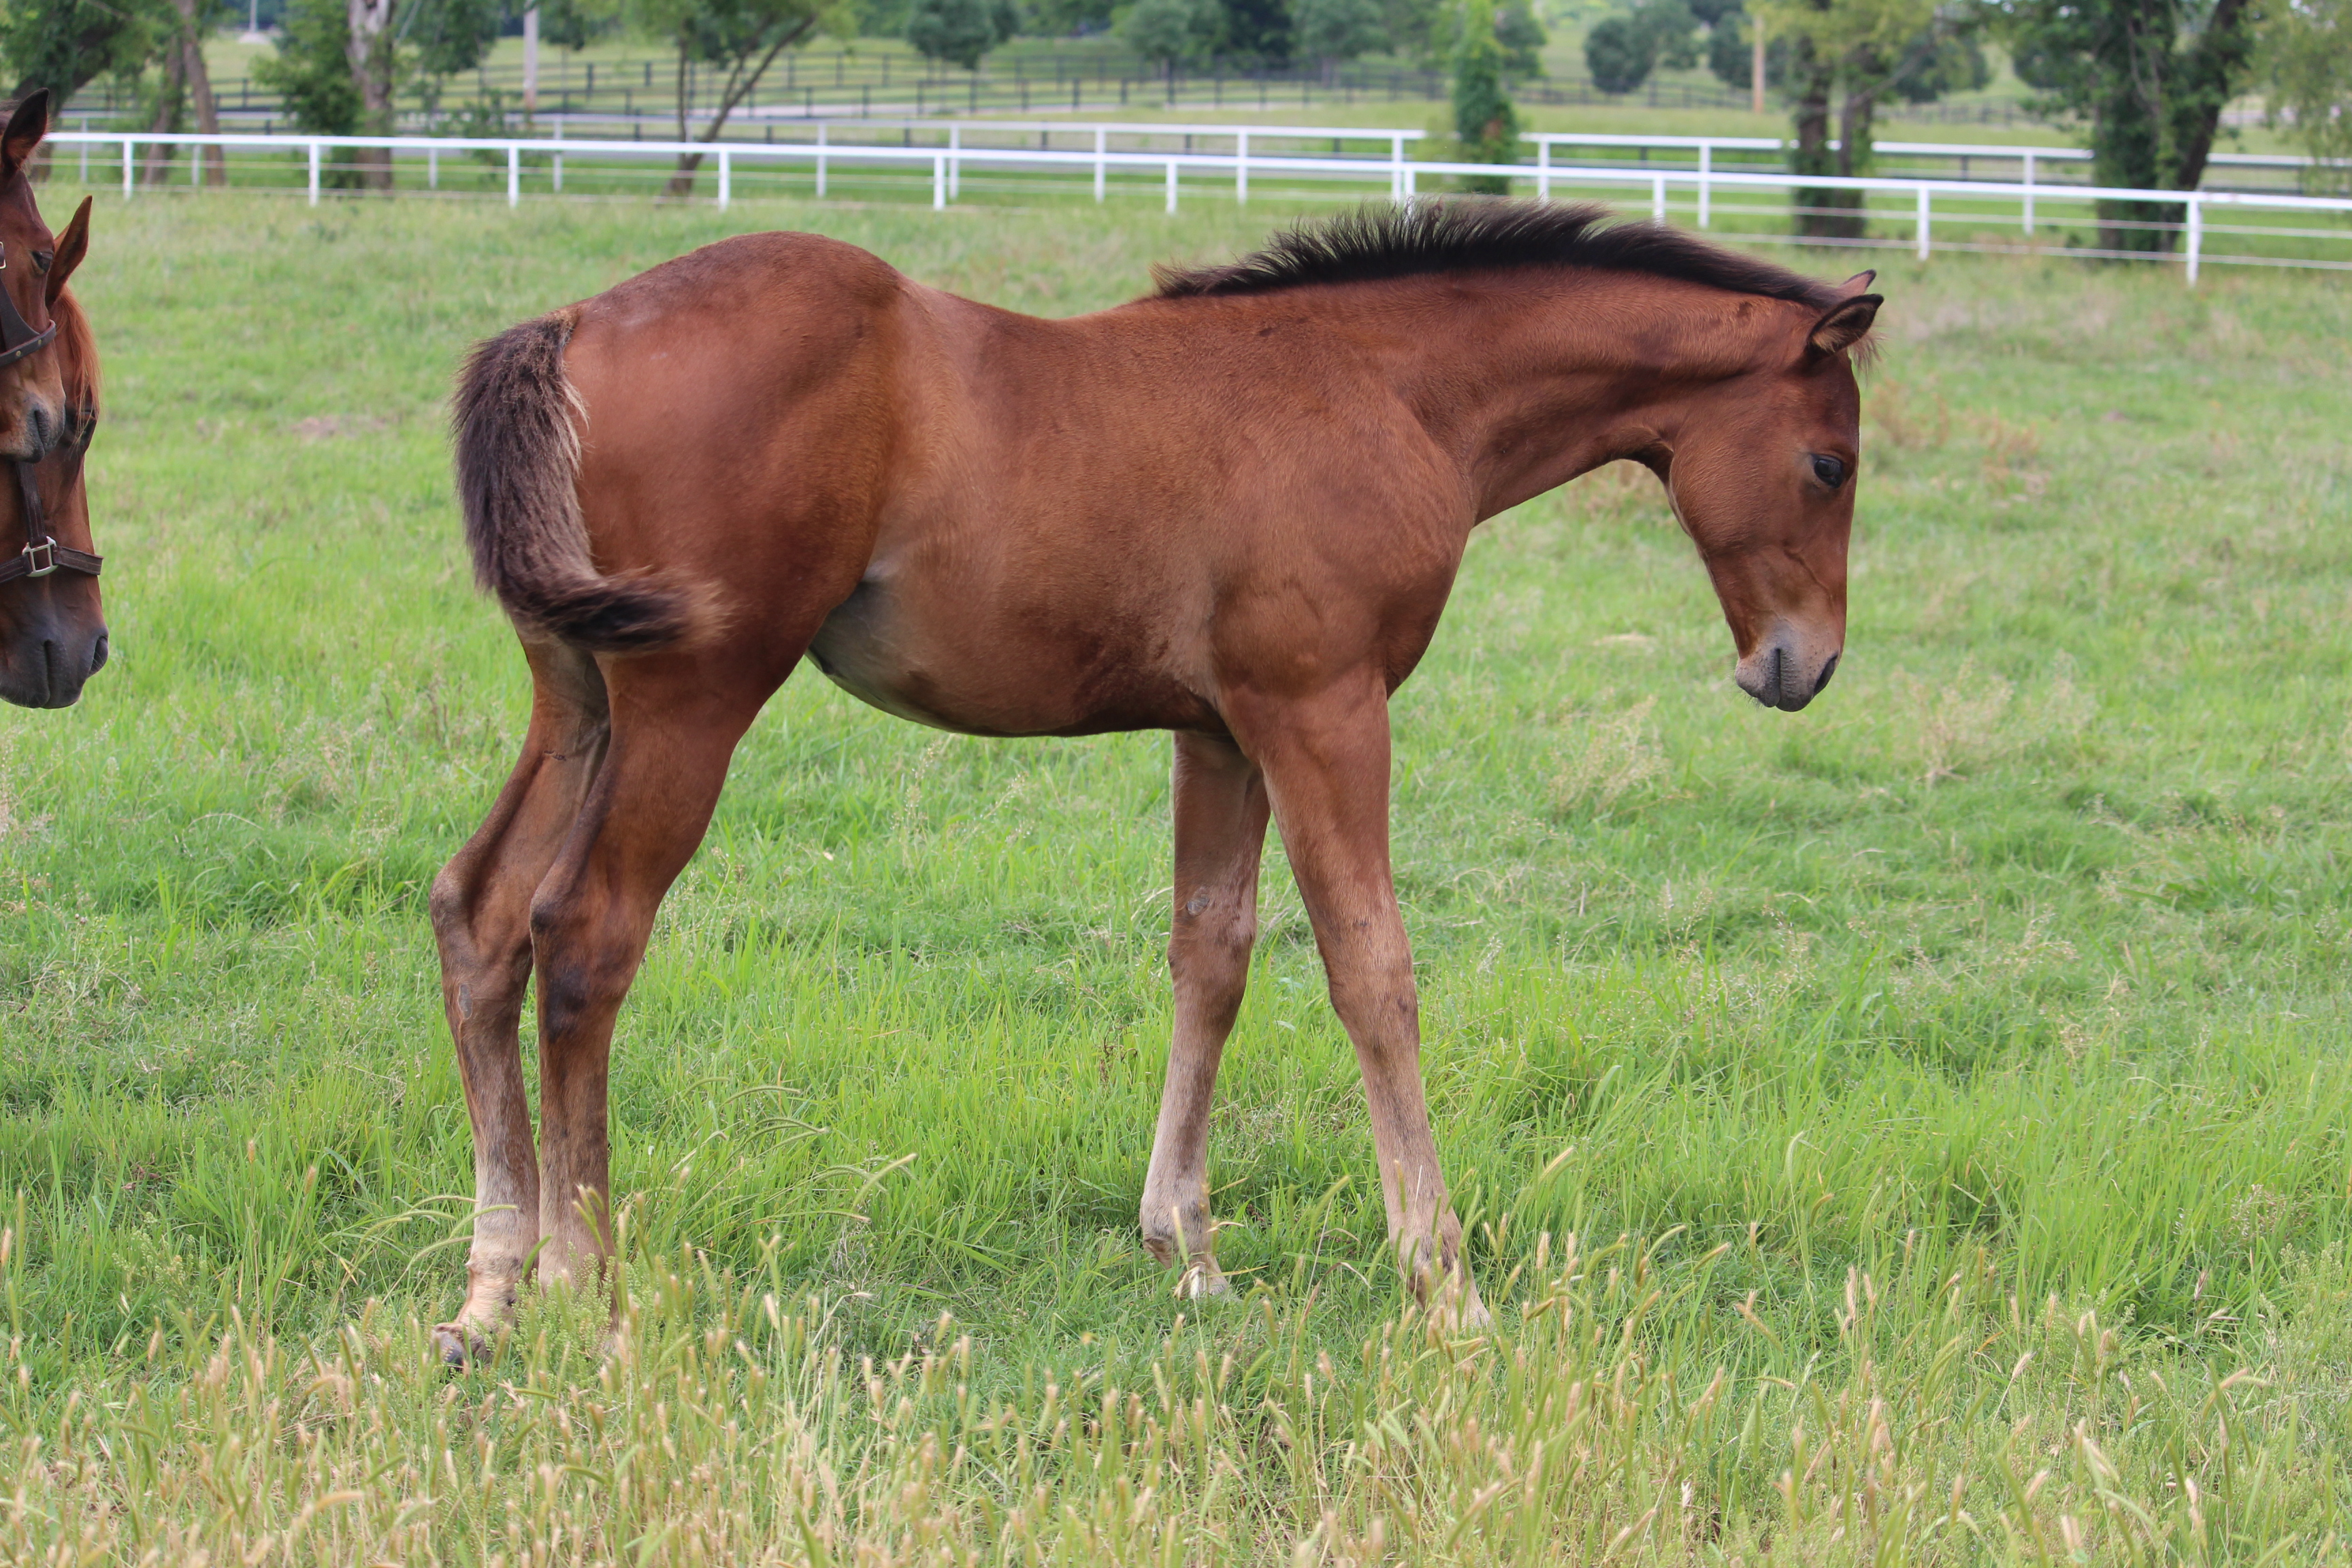 2020 Filly Code West out of Mystical Char